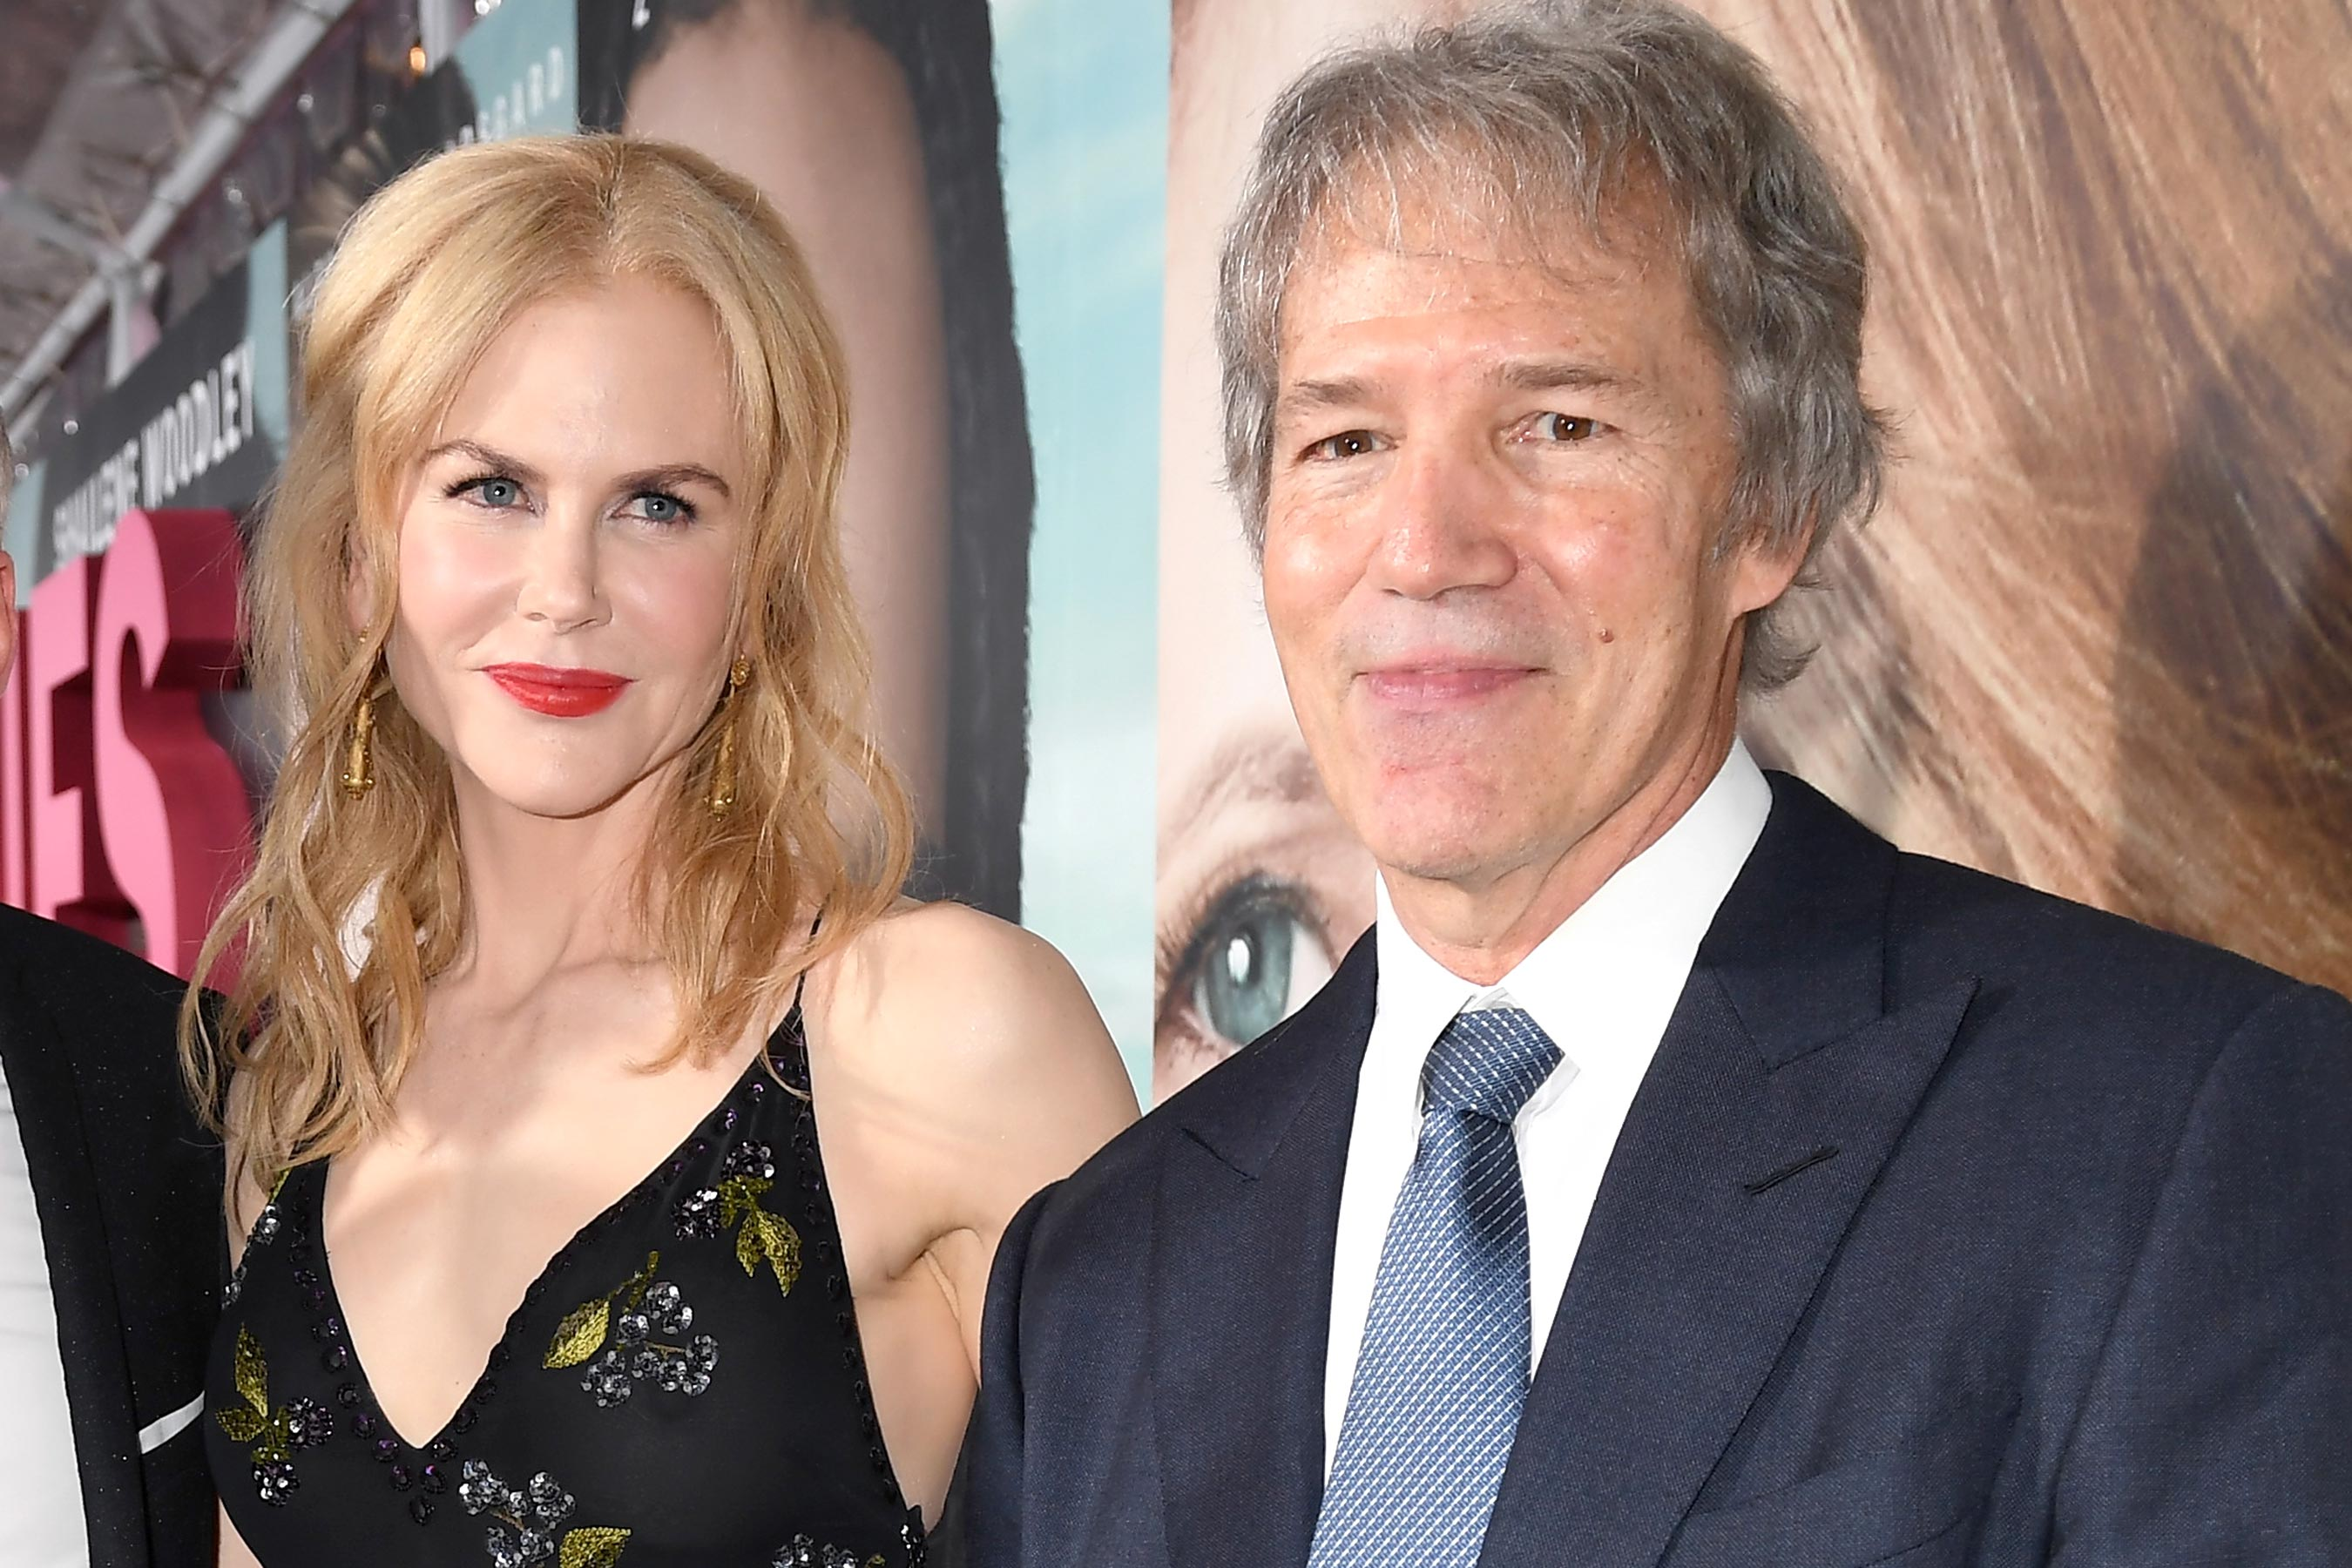 Nicole Kidman partners with David E. Kelley for HBO's The Undoing